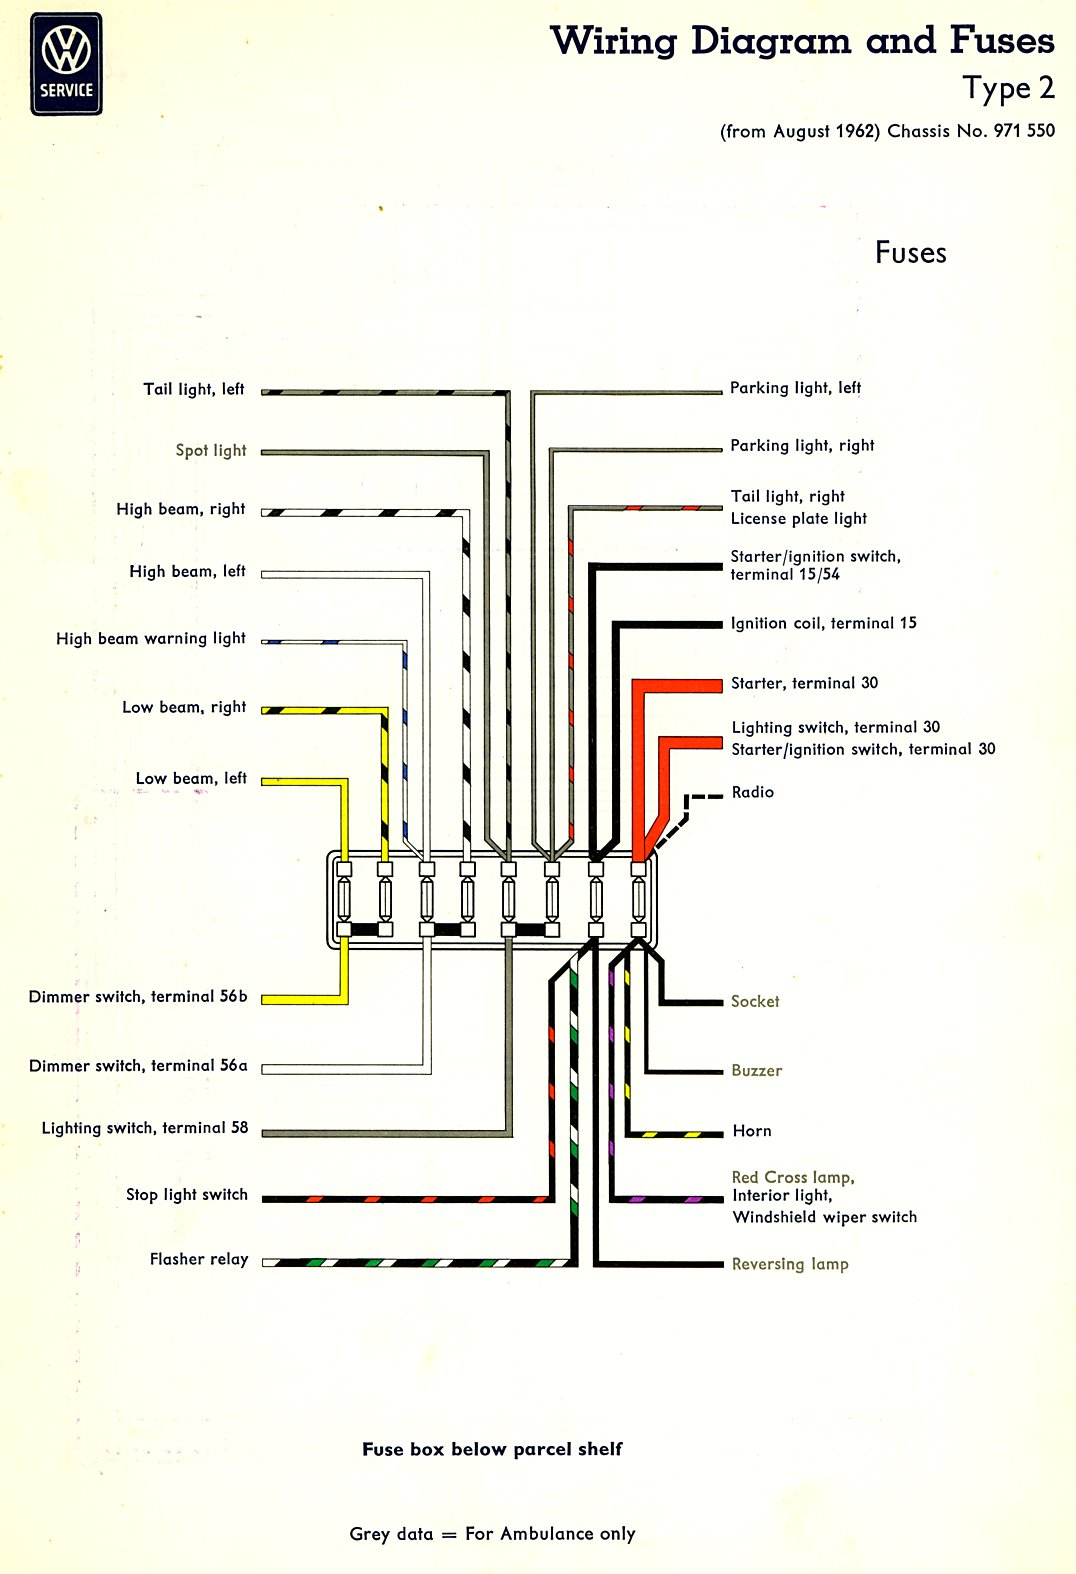 thesamba type 2 wiring diagrams thesamba com type 2 wiring diagrams 1958 vw type 2 wiring diagram